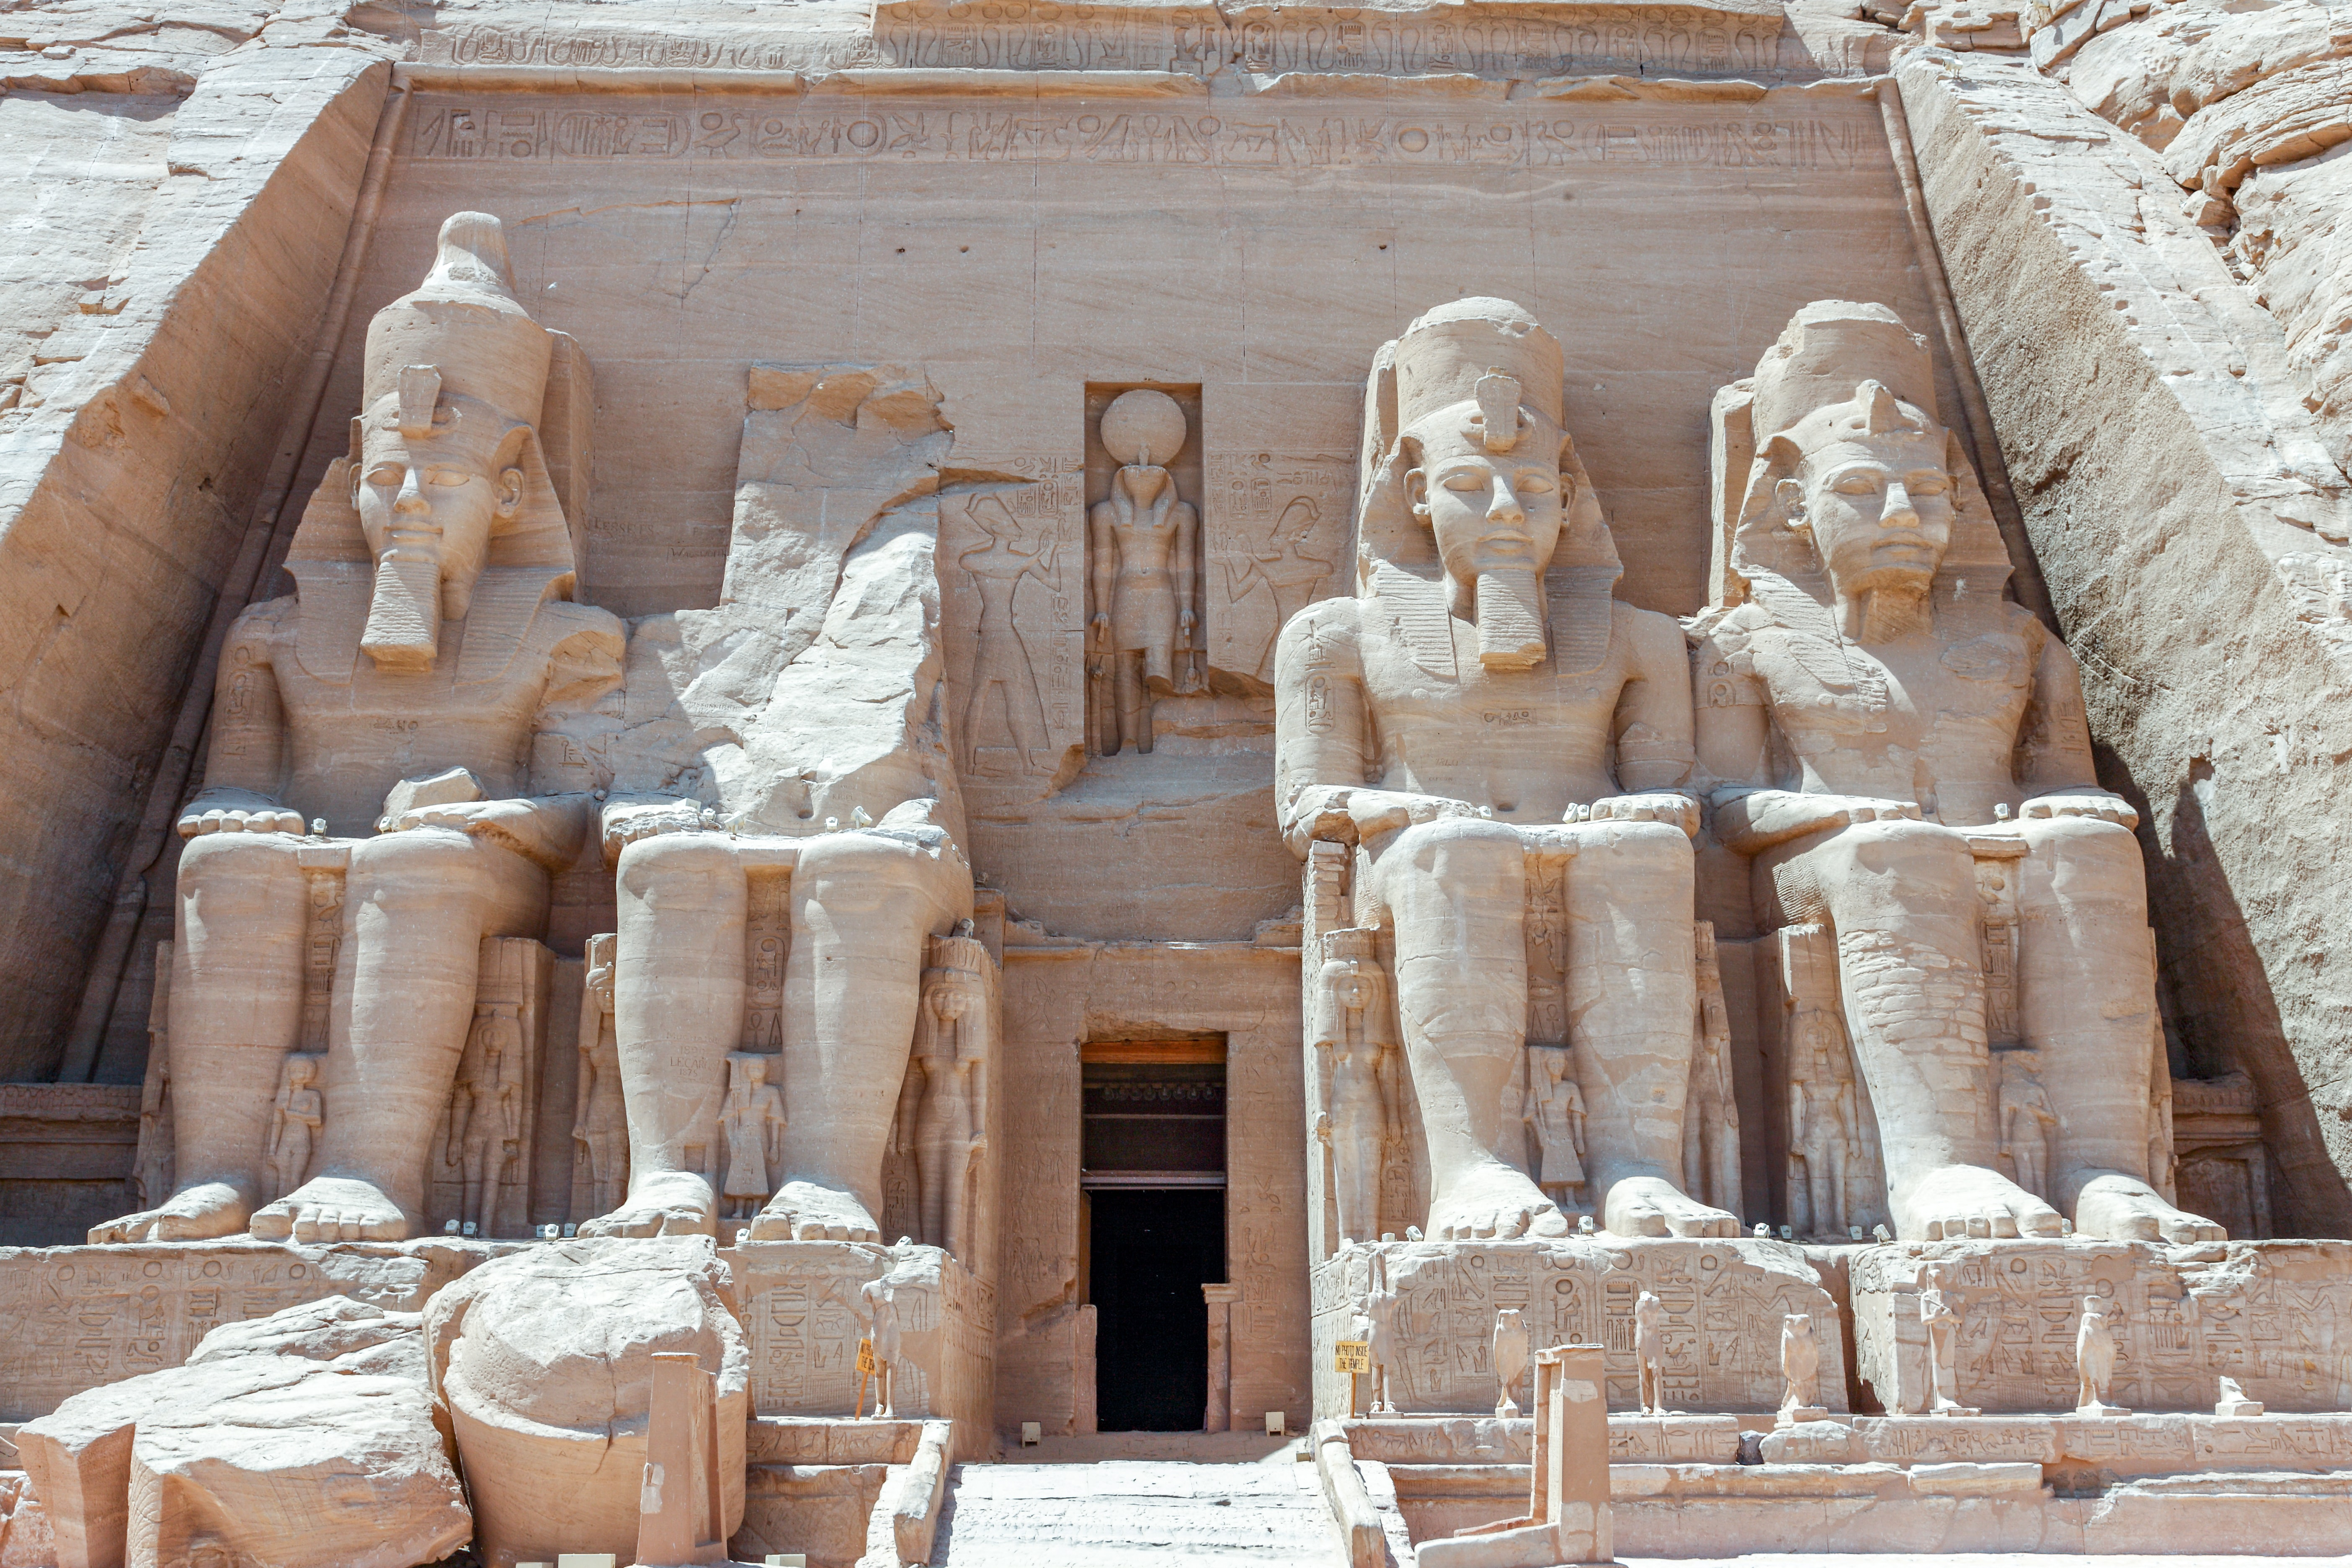 The entrance to the Abu Simbel rock temples in Nubia, south Egypt, during the daytime